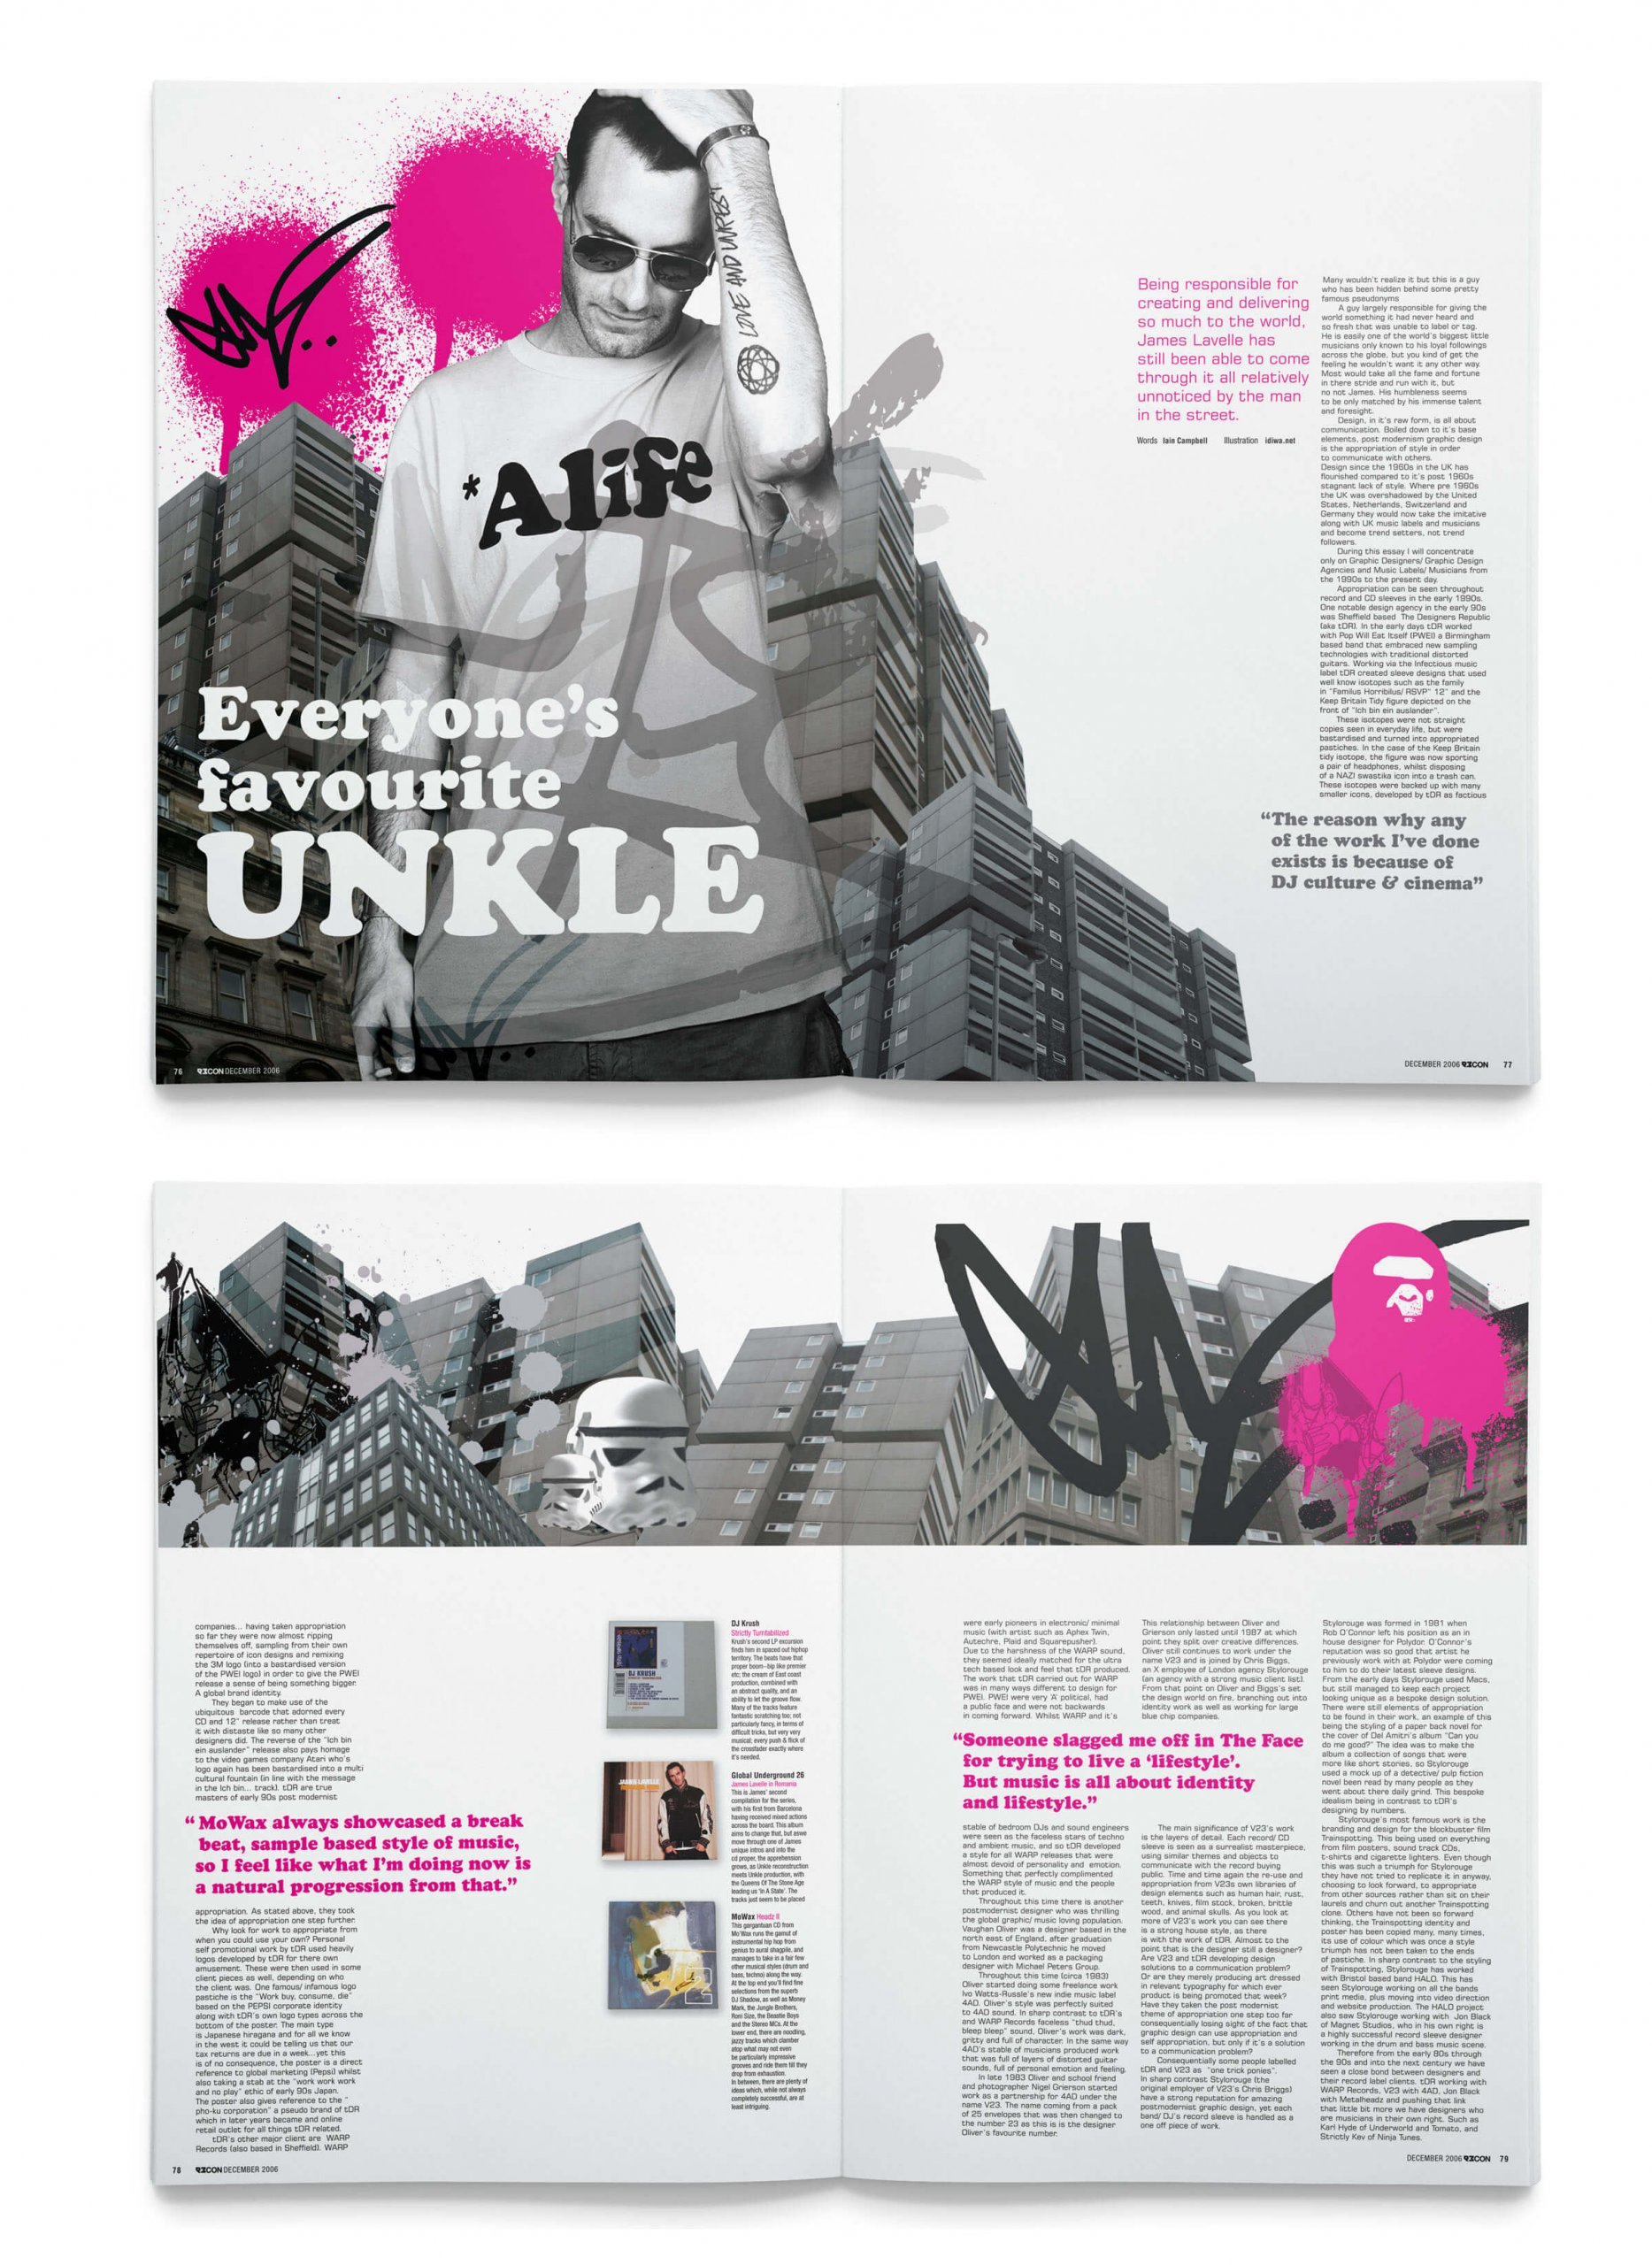 Unkle-magazine-spreads